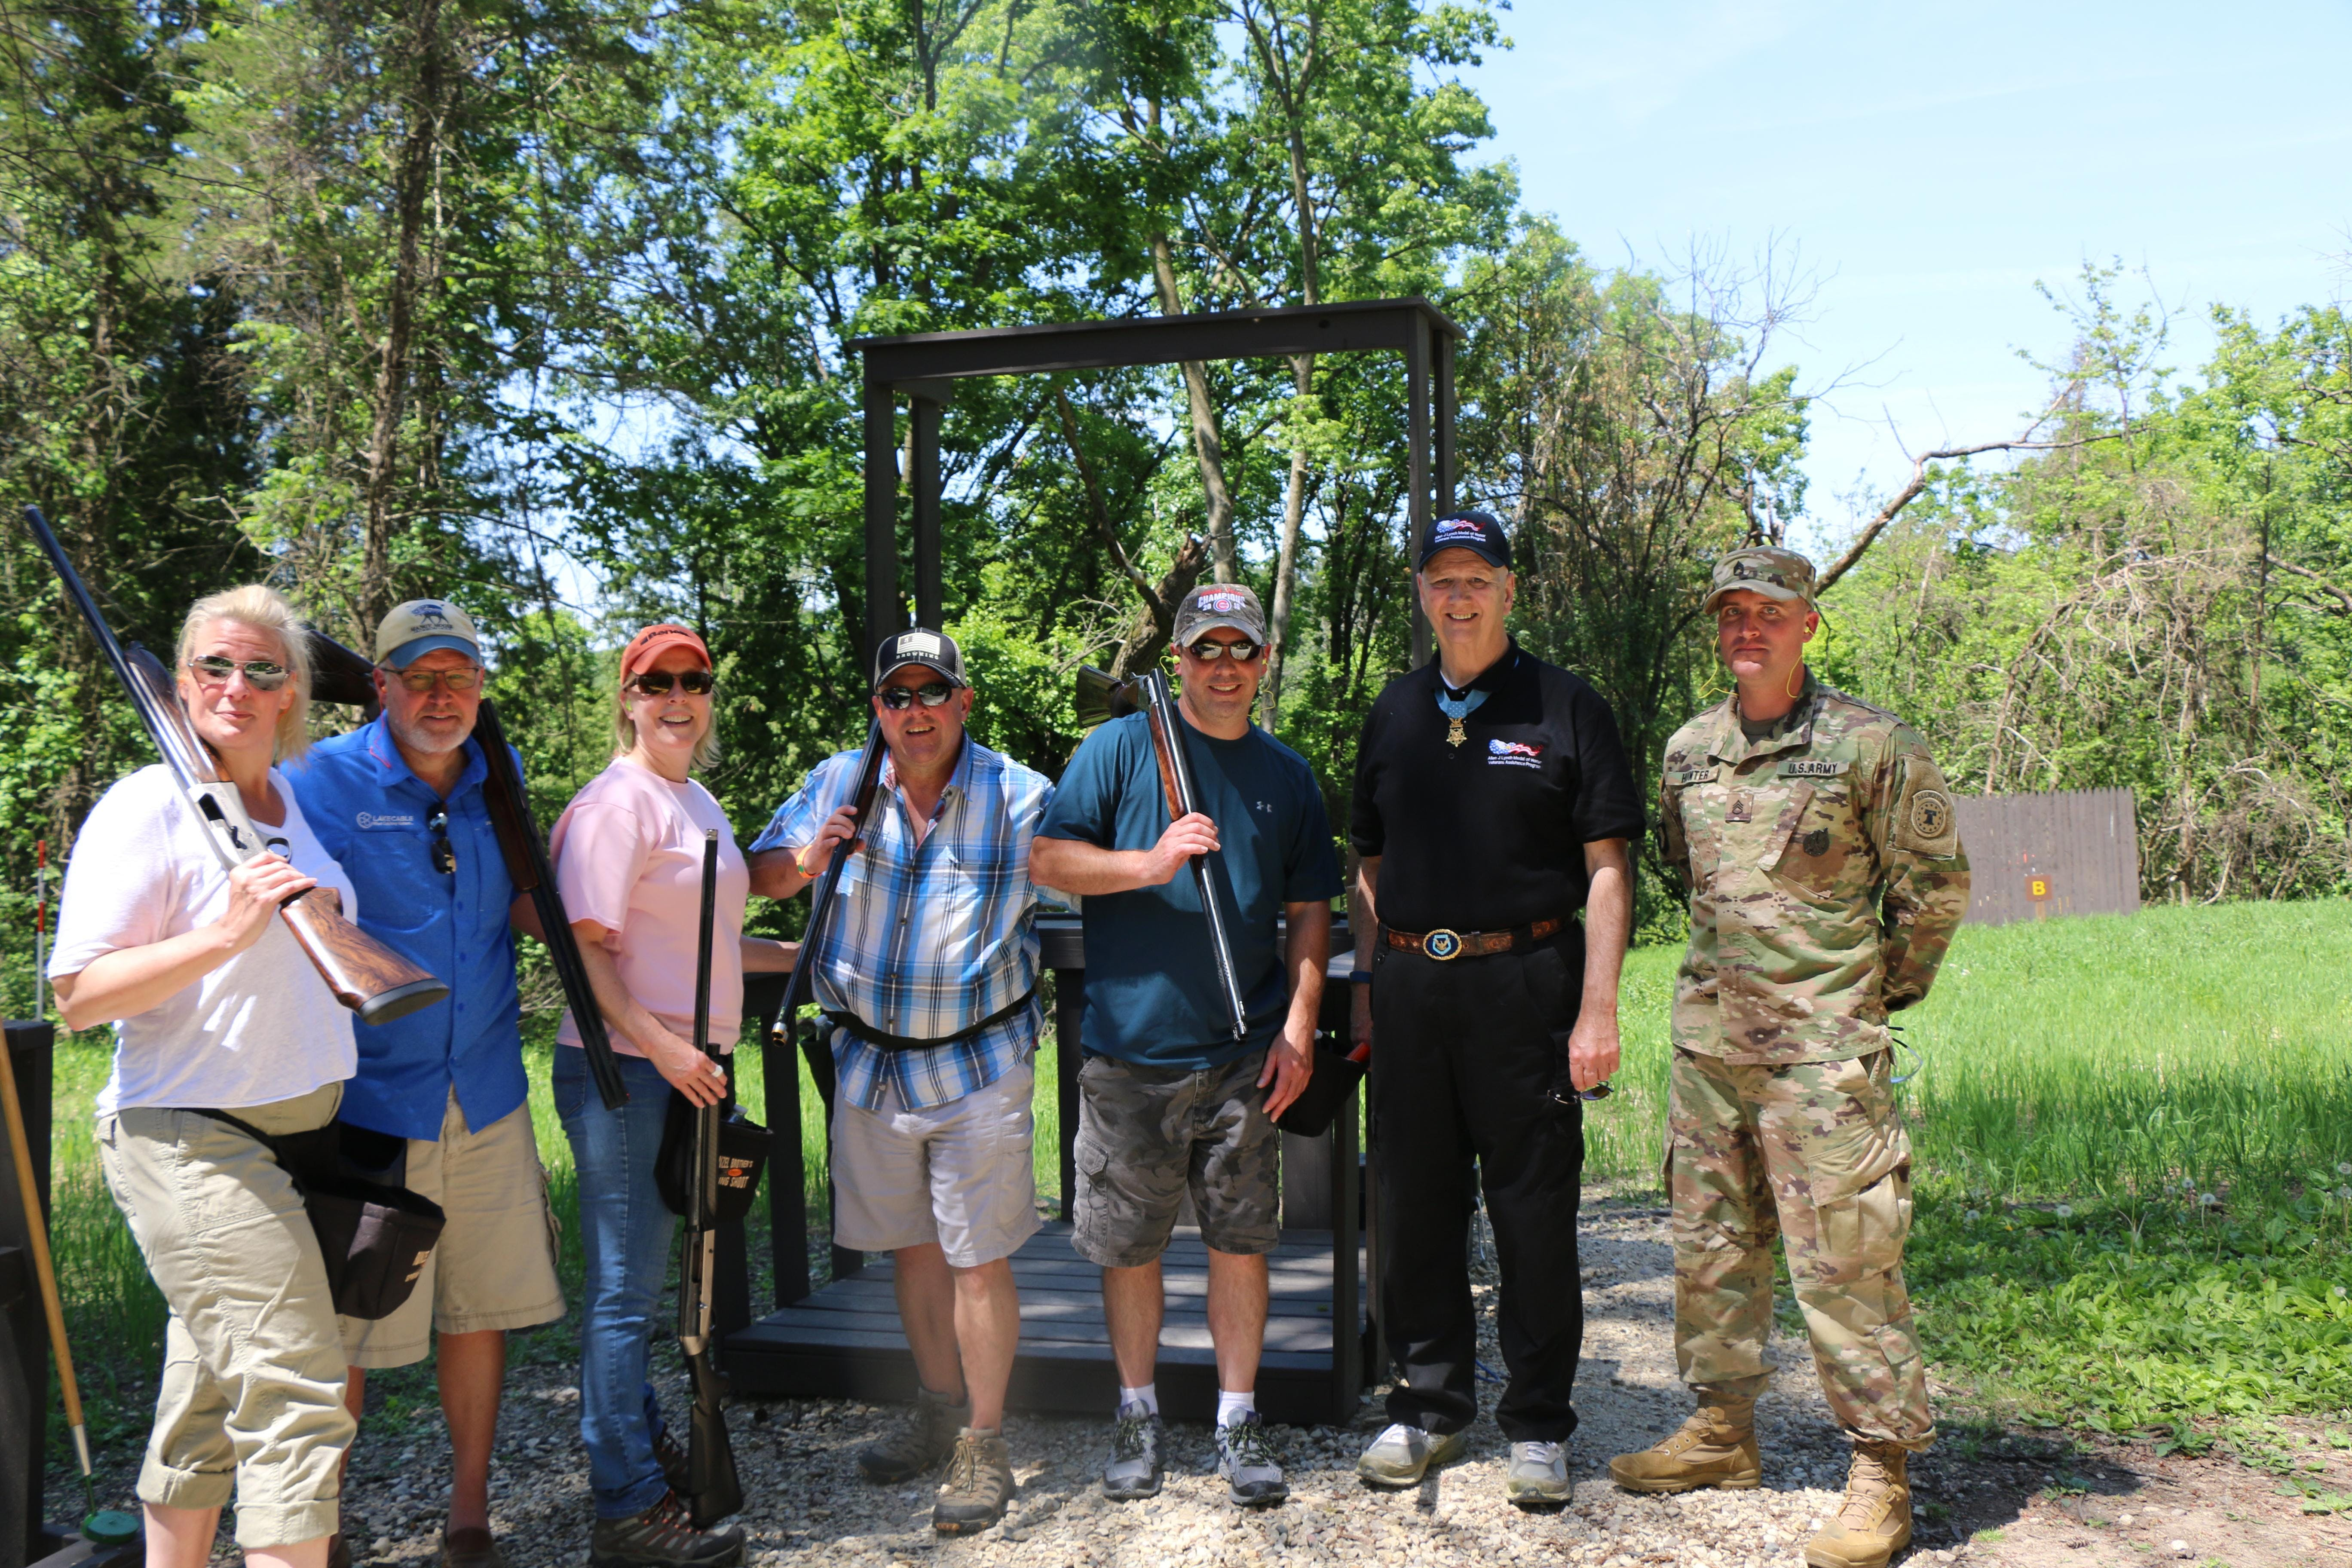 2018 Annual Sporting Clays Fundraiser